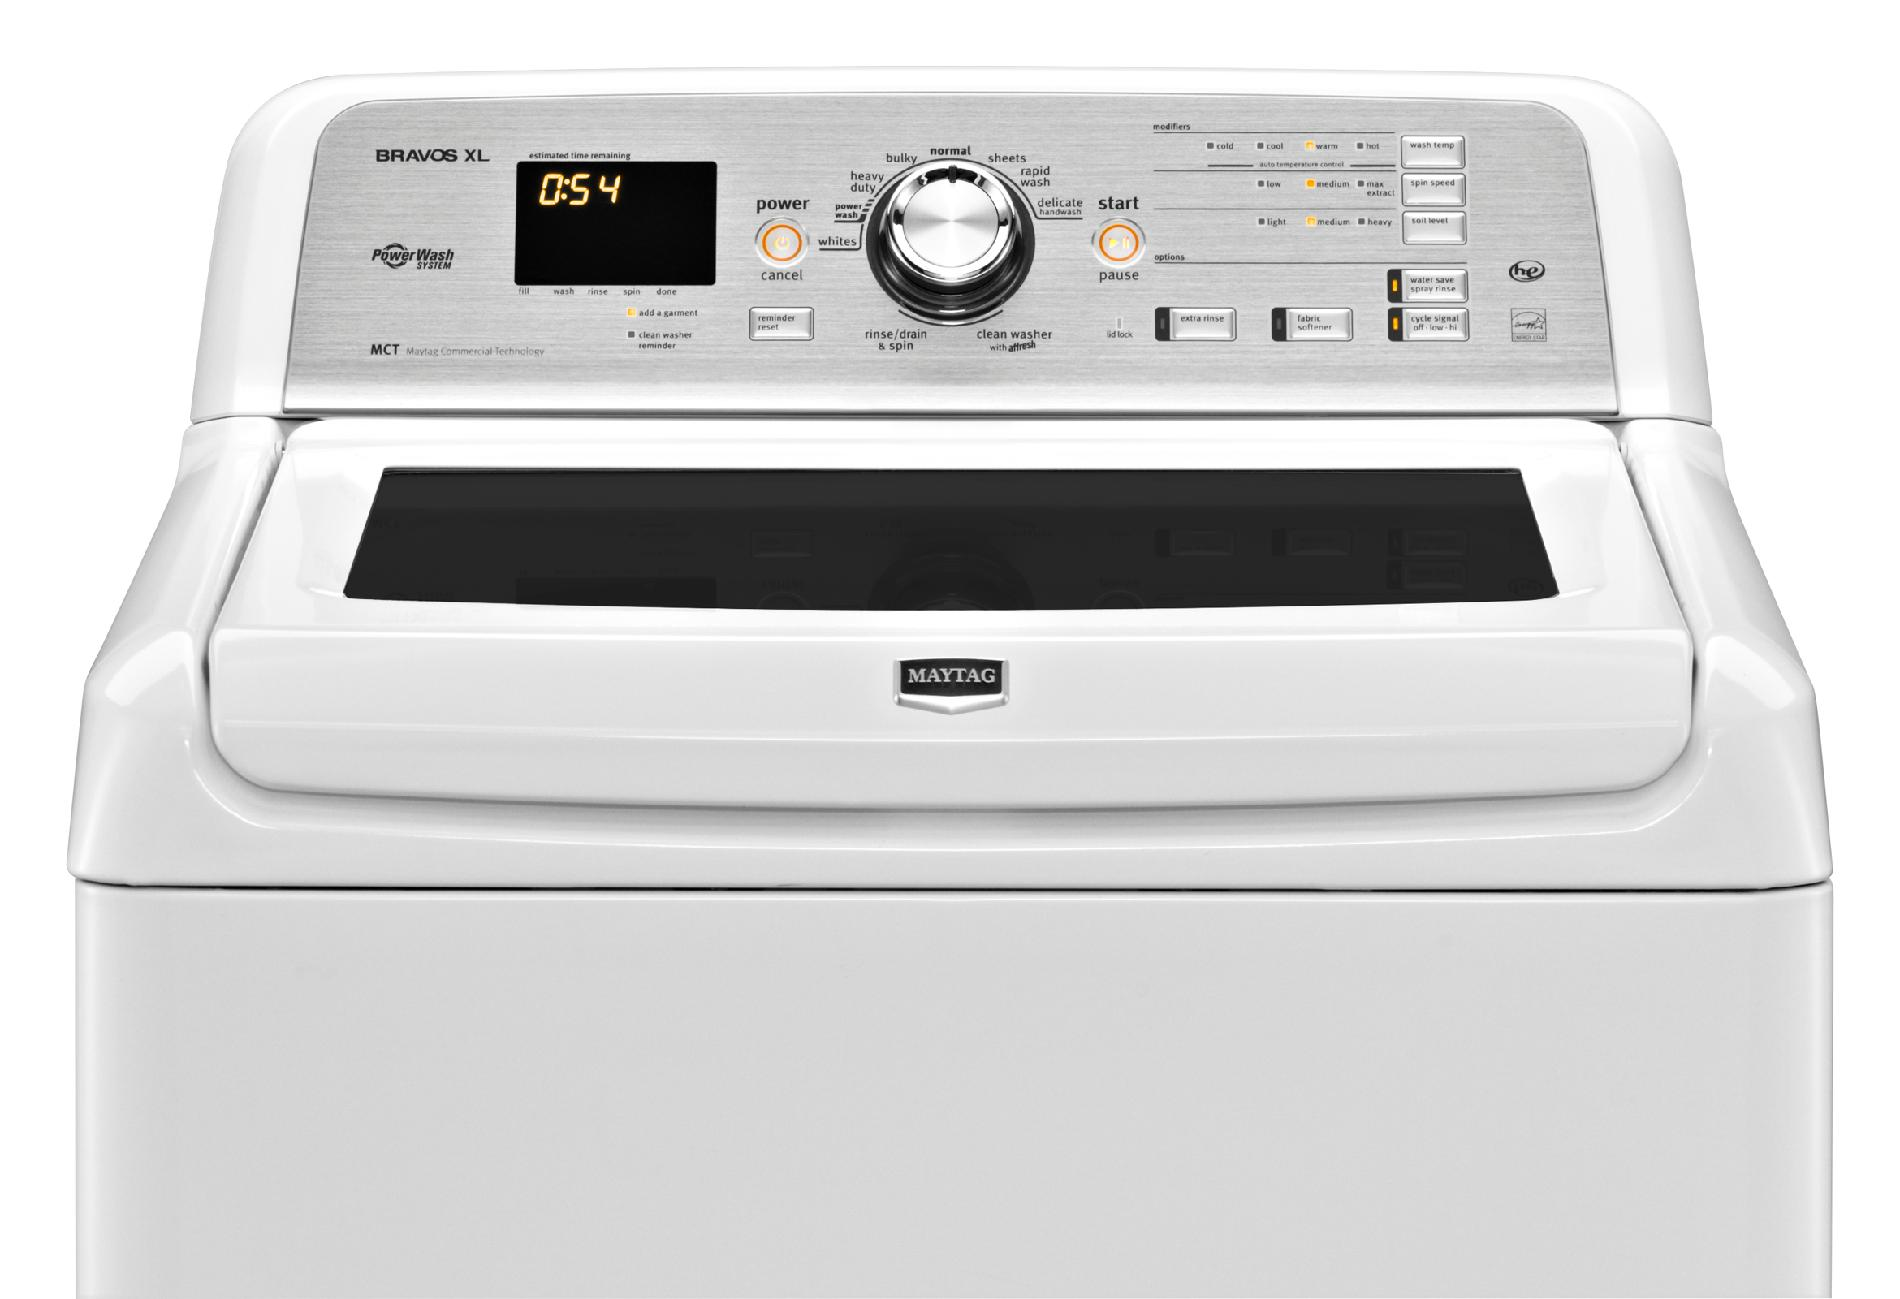 Maytag MVWB725BW 4.5 cu. ft. Bravos XL® High-Efficiency Top-Load Washer - White